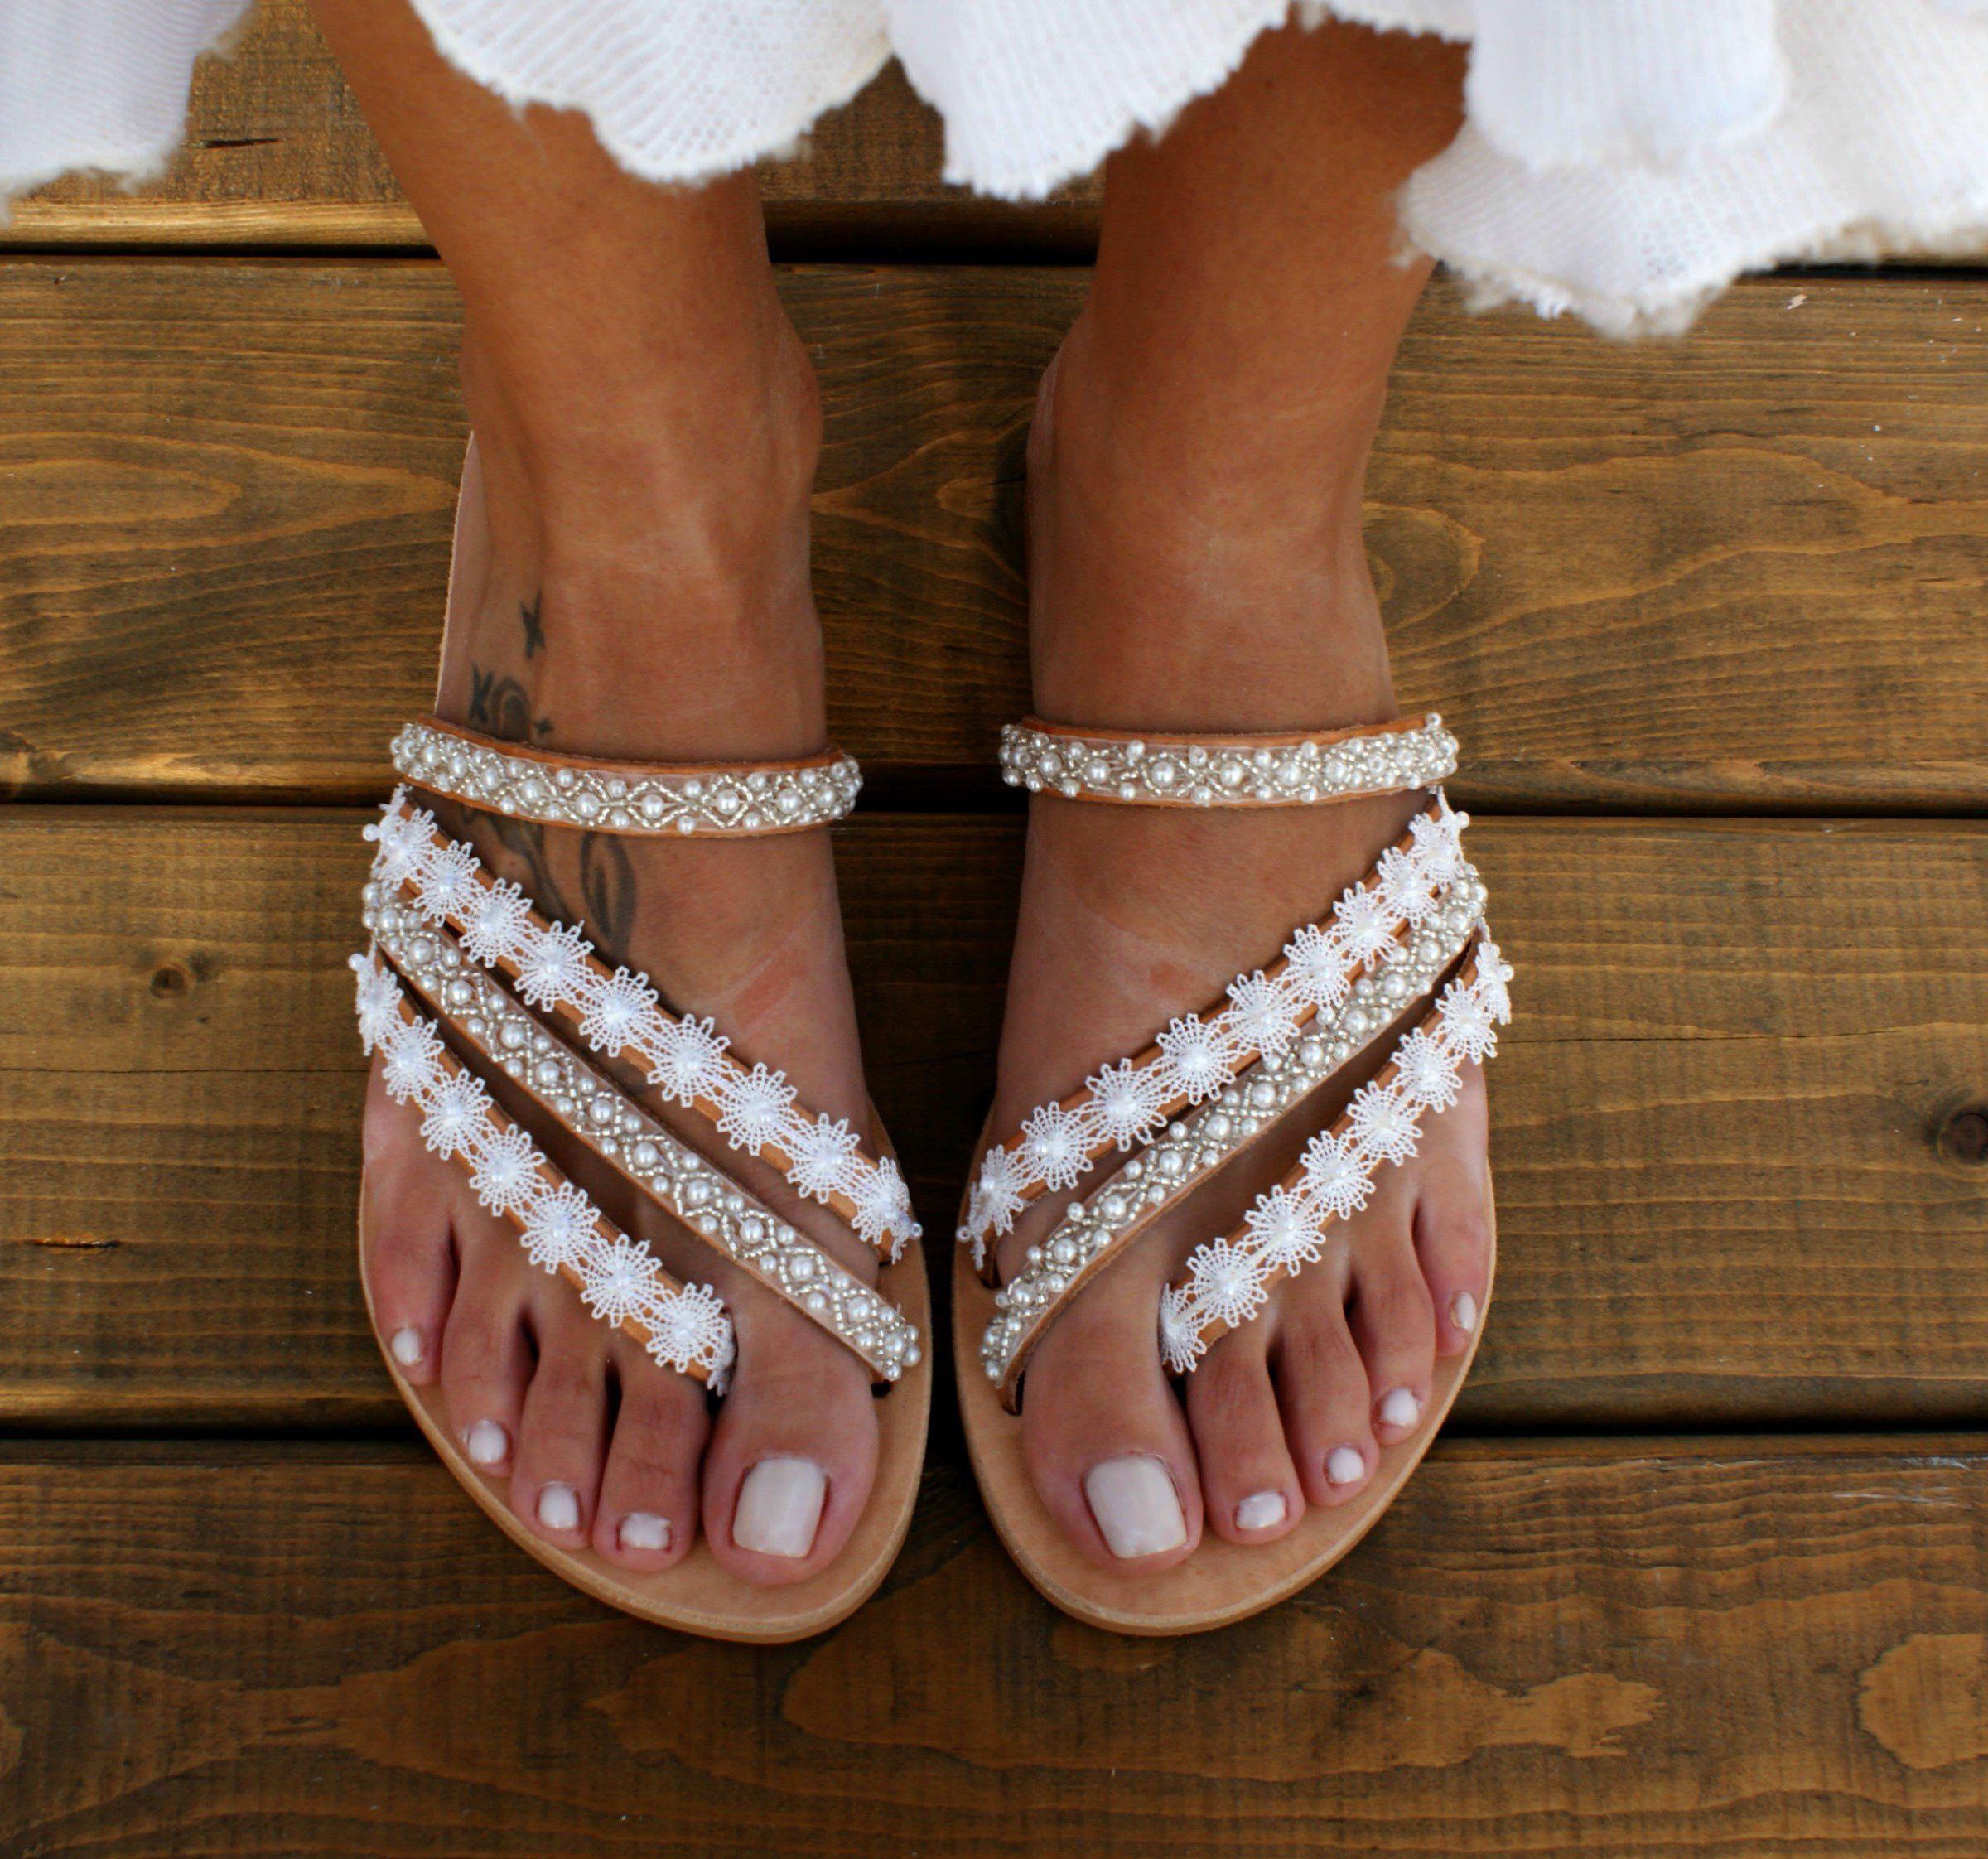 Wedding sandals/ bridal sandals/ leather sandals/ handmade sandals/ pearl sandals/ beach wedding sandals/ white wedding shoes/